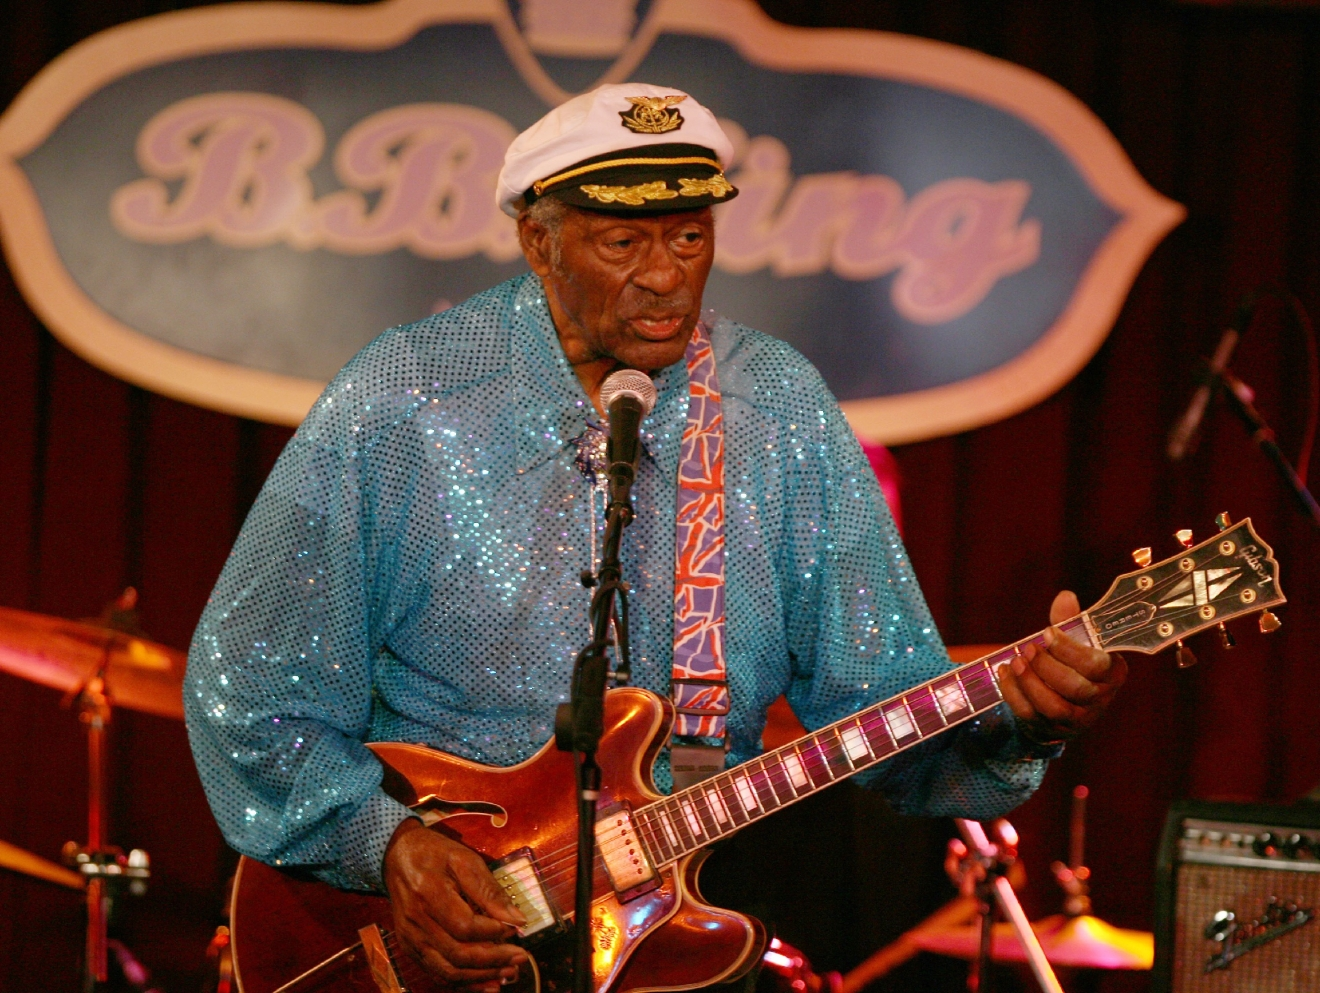 B.B. King's presents Chuck berry in concert  Featuring: B.B. King's presents Chuck berry in concert Where: New York City, NY, United States When: 12 Sep 2009 Credit: WENN